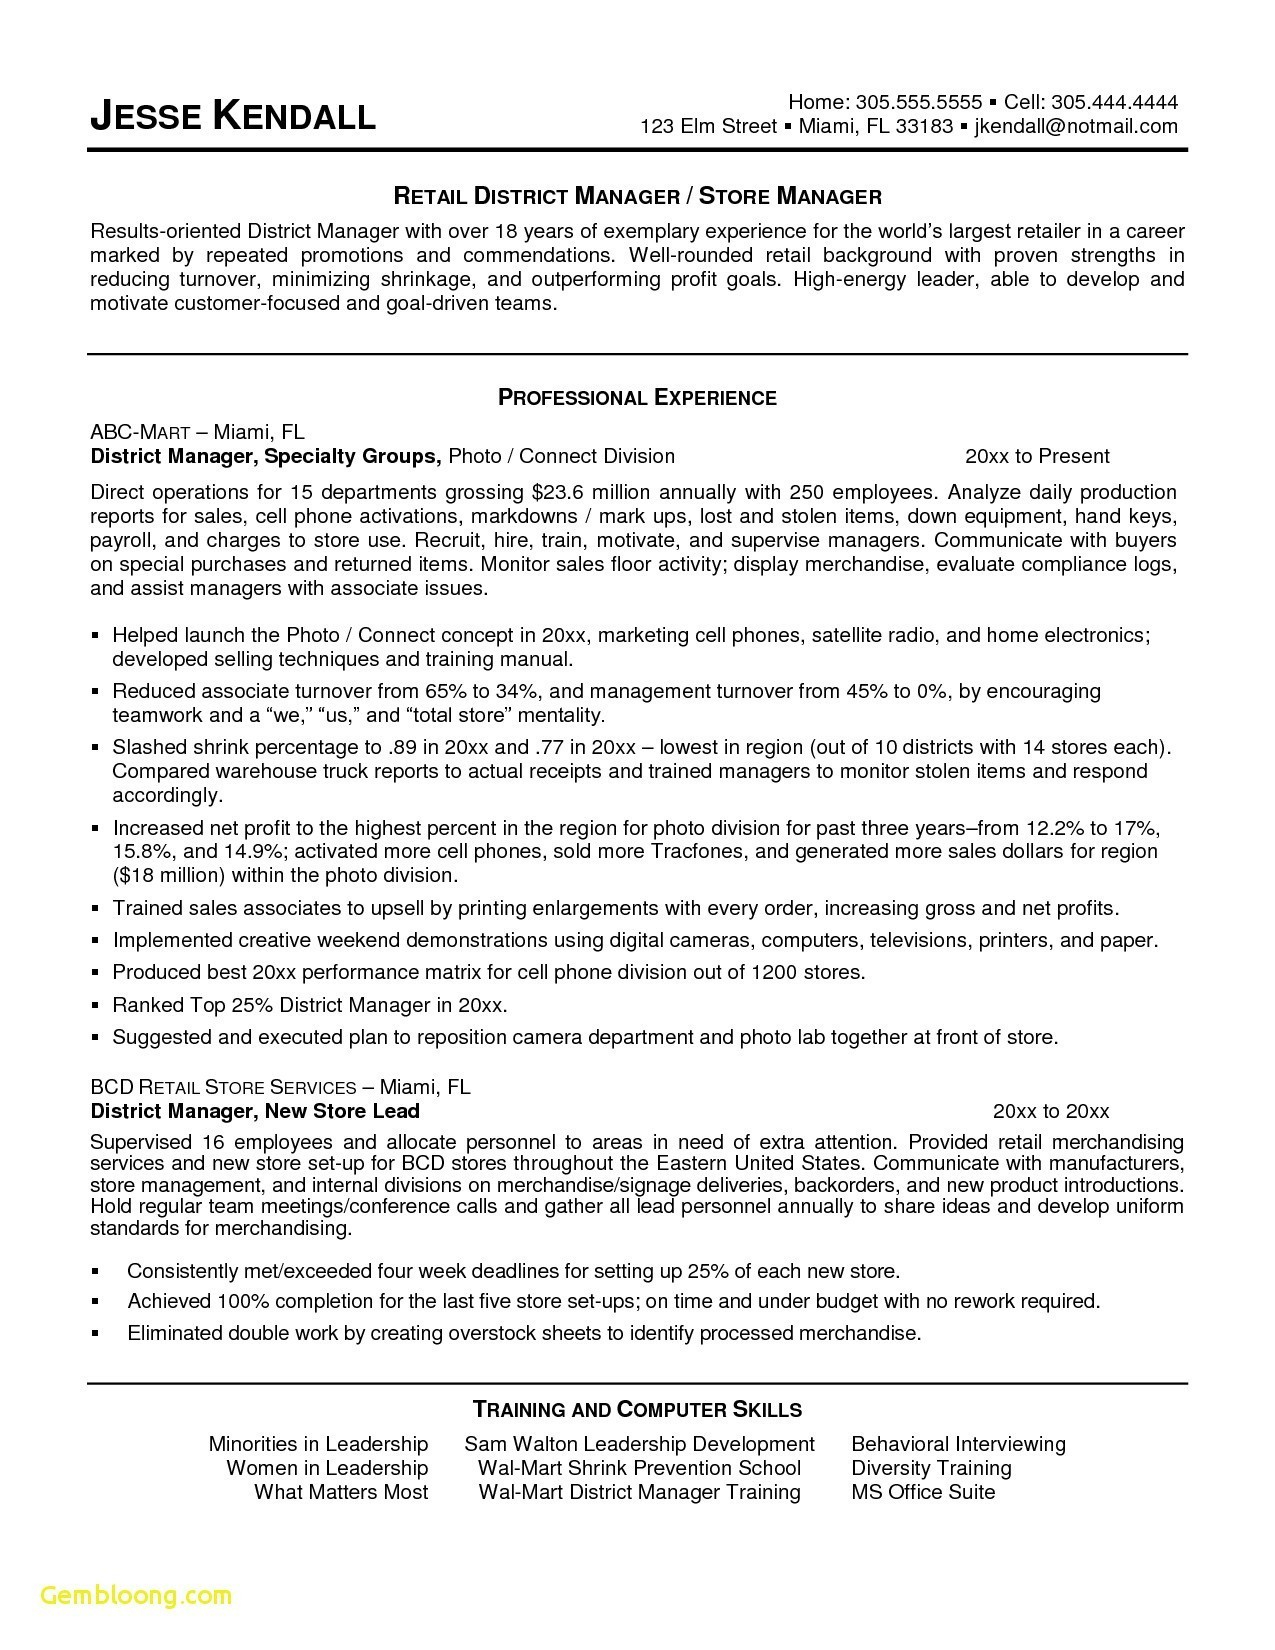 ats friendly resume template Collection-Ats Resume Template Fresh Fresh Grapher Resume Sample Beautiful Resume Quotes 0d Bar Manager Ats 8-f